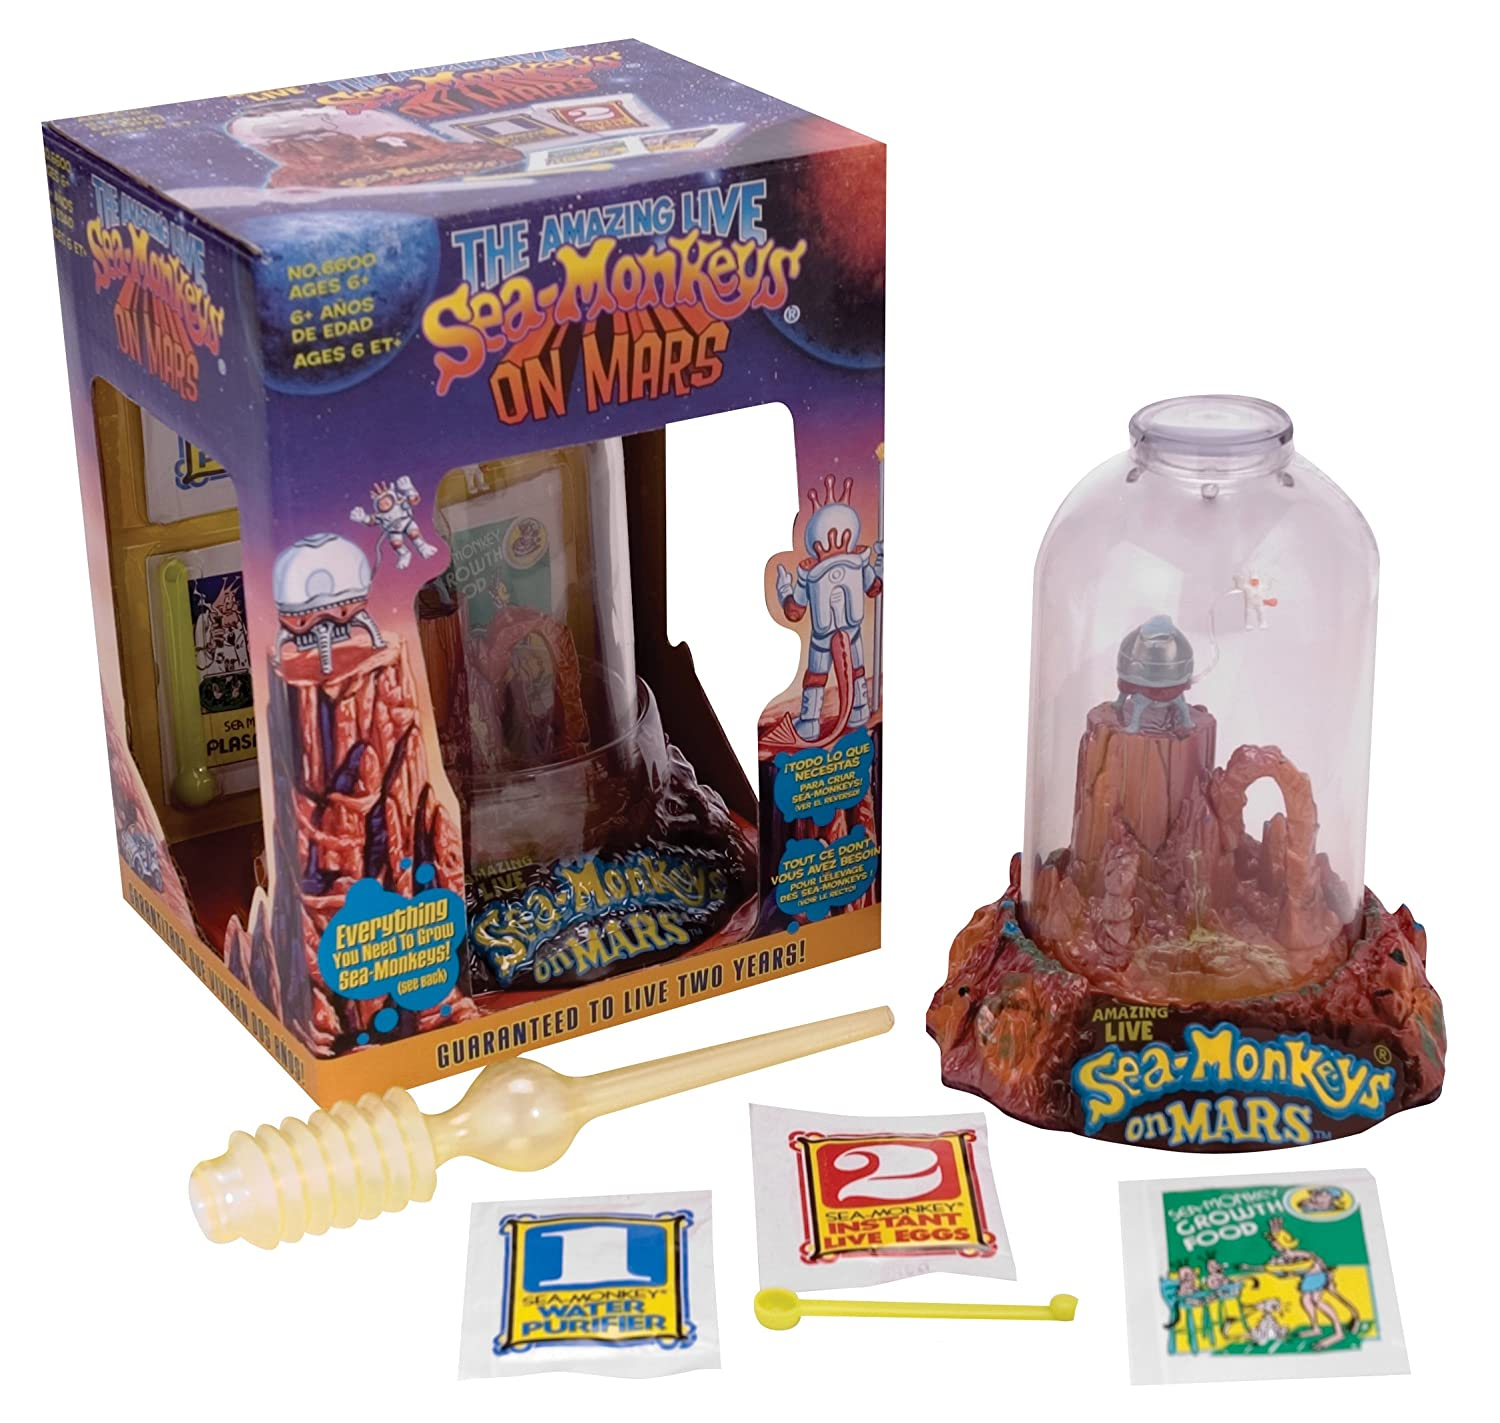 de moda Schylling Sea Monkeys on on on Mars by Schylling  Con 100% de calidad y servicio de% 100.